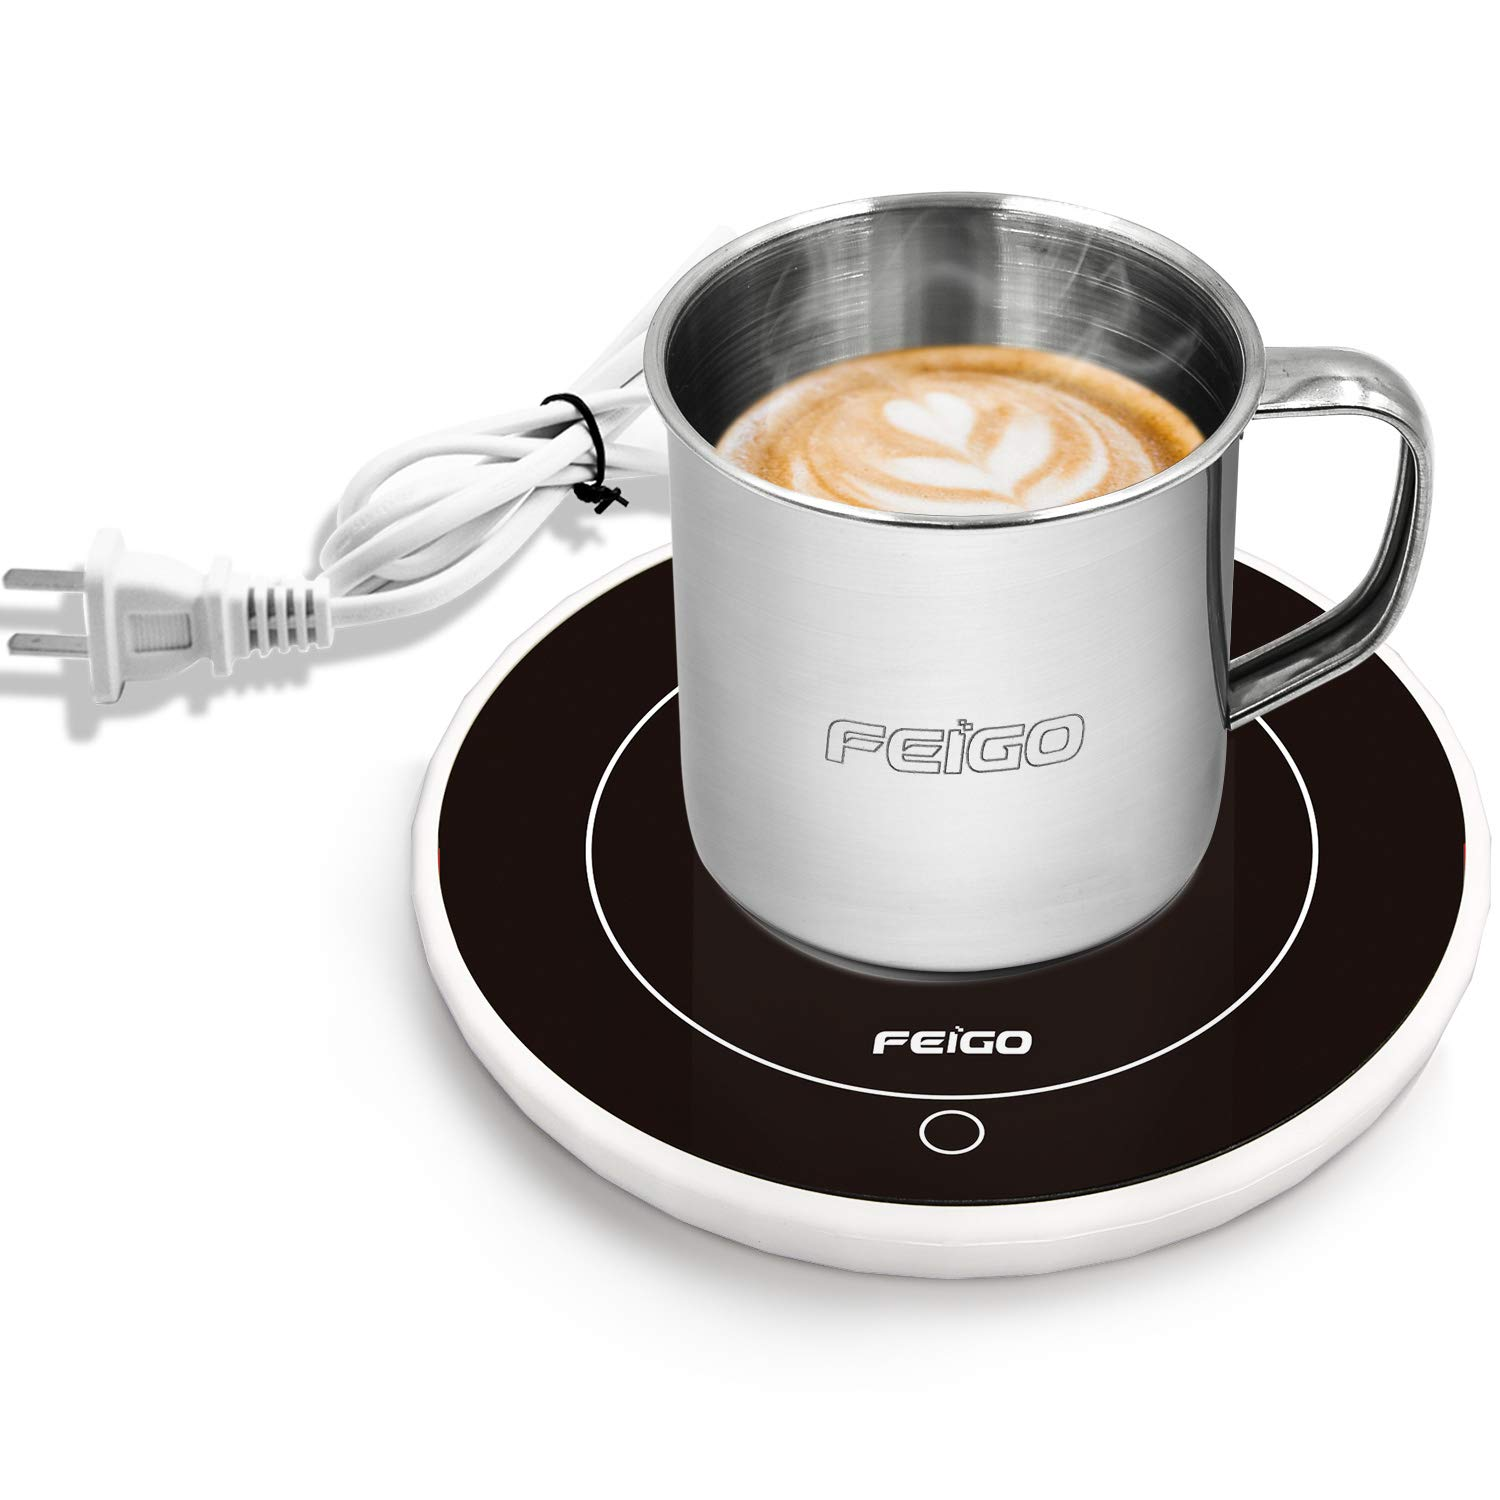 Zoiibuy Coffee Mug Warmer with Stainless Steel Cup, Tea Milk Electric Beverage Warmer Plate Cup Heater for Home Office, 8 hours Auto Shut Off, Gravity Sensor Switch, up to 69.5℃/157℉ (White+Cup)